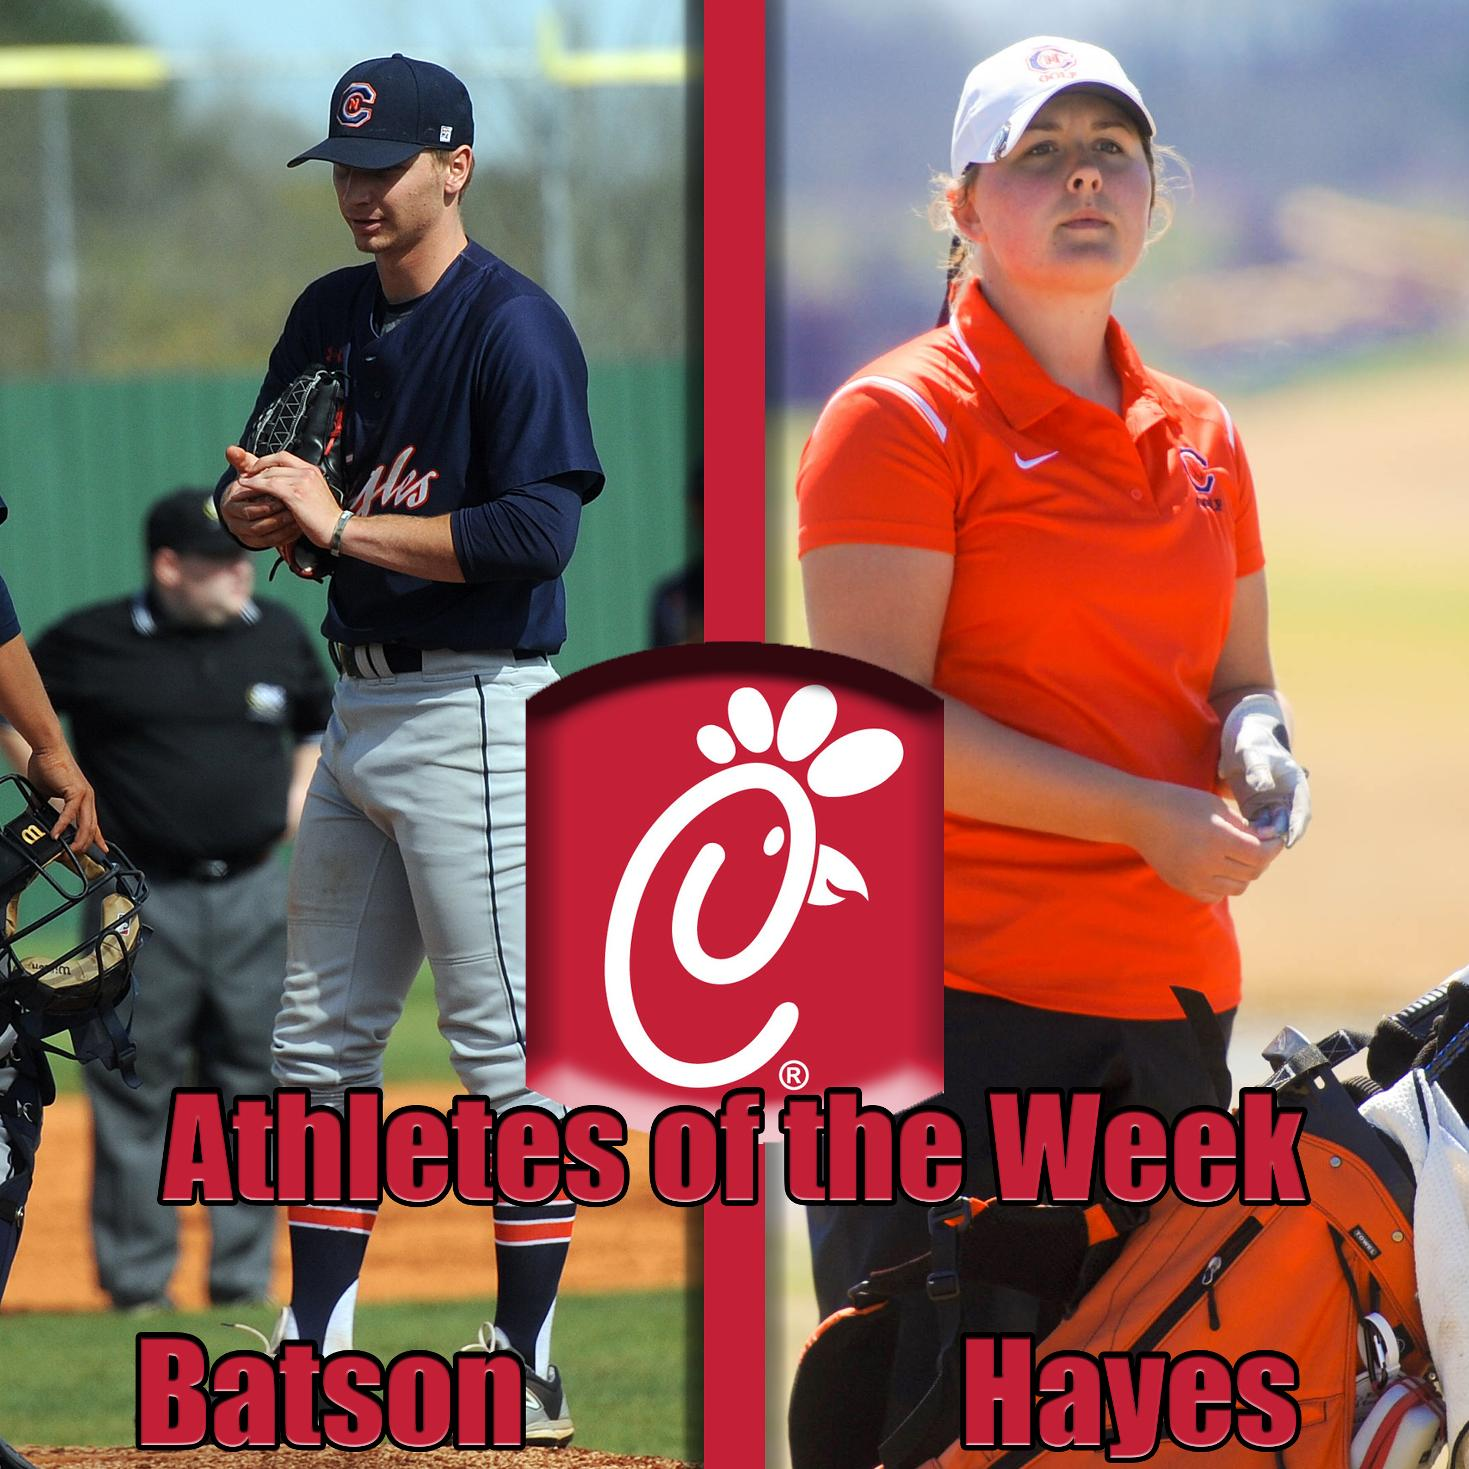 Batson, Hayes named Chick-Fil-A Athletes of the Week